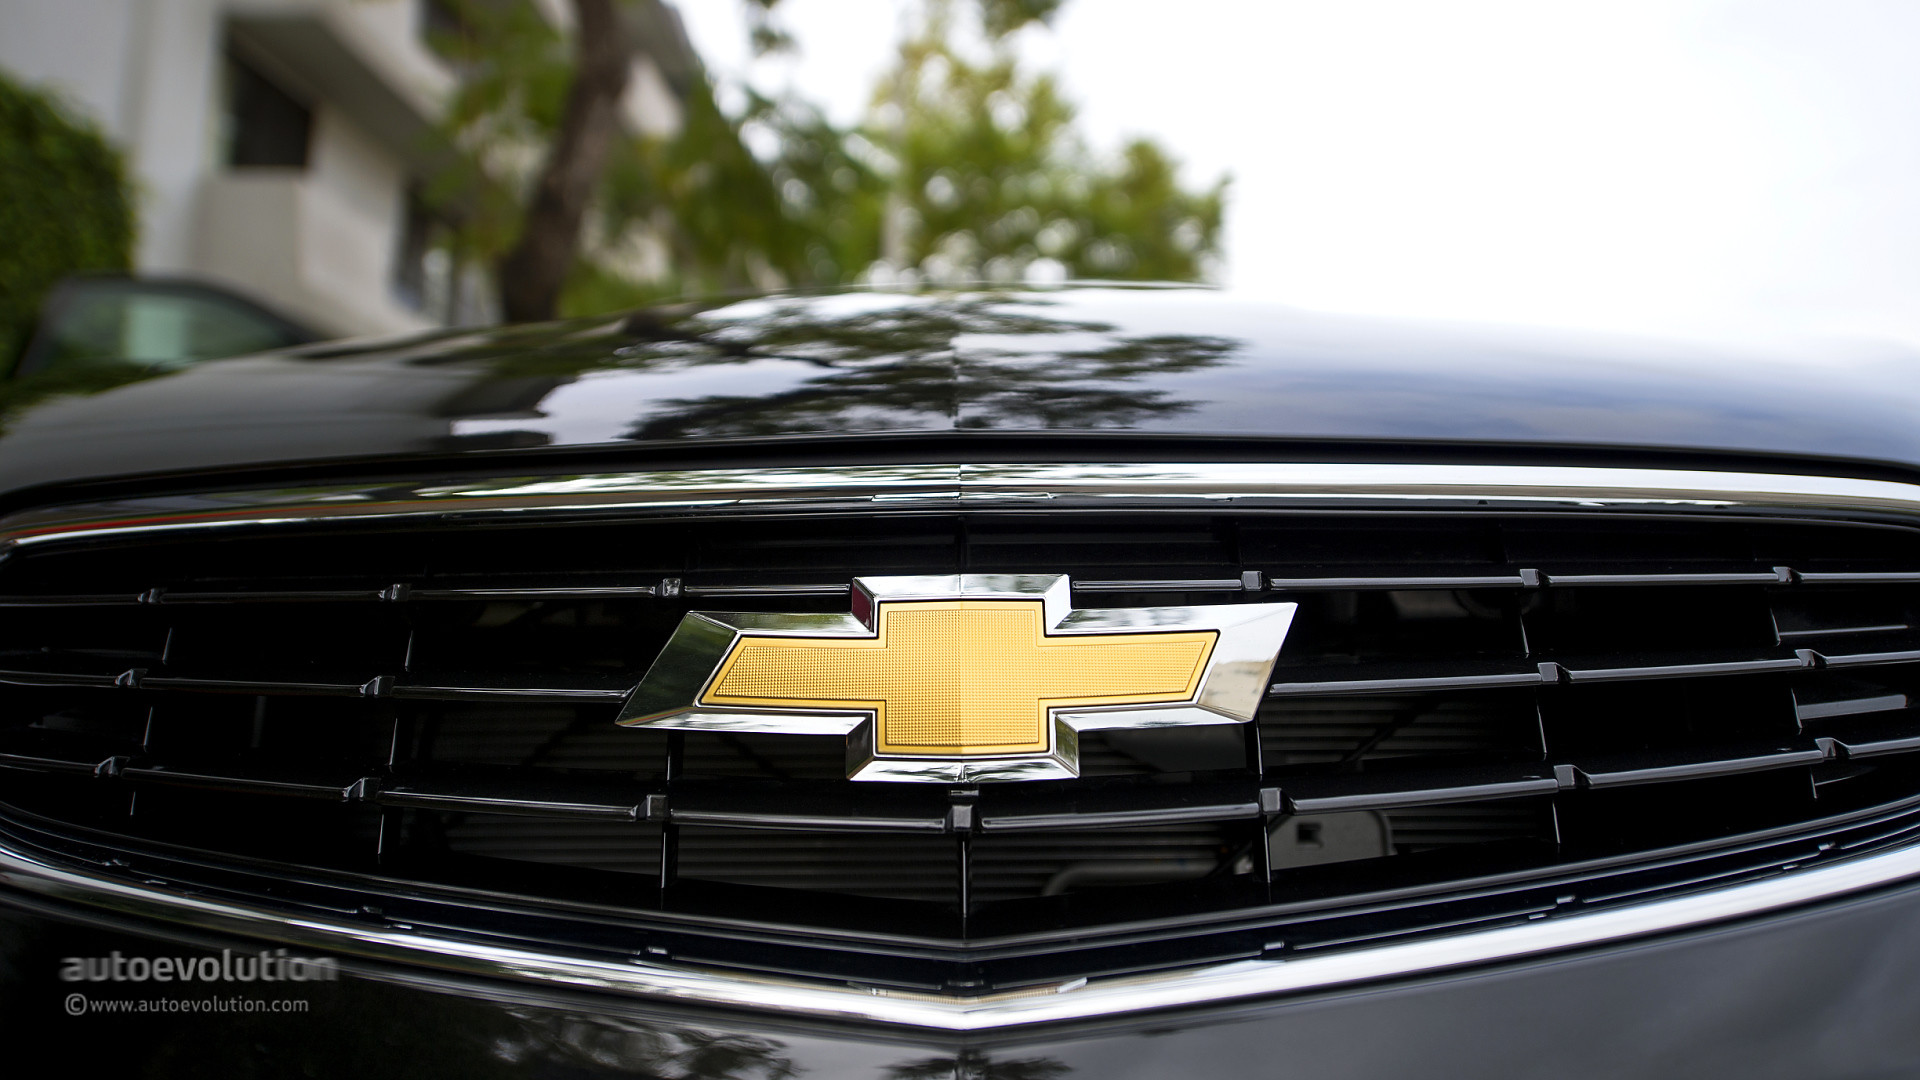 1920x1080 ... chevrolet ss hd wallpapers autoevolution; chevrolet bowtie ...